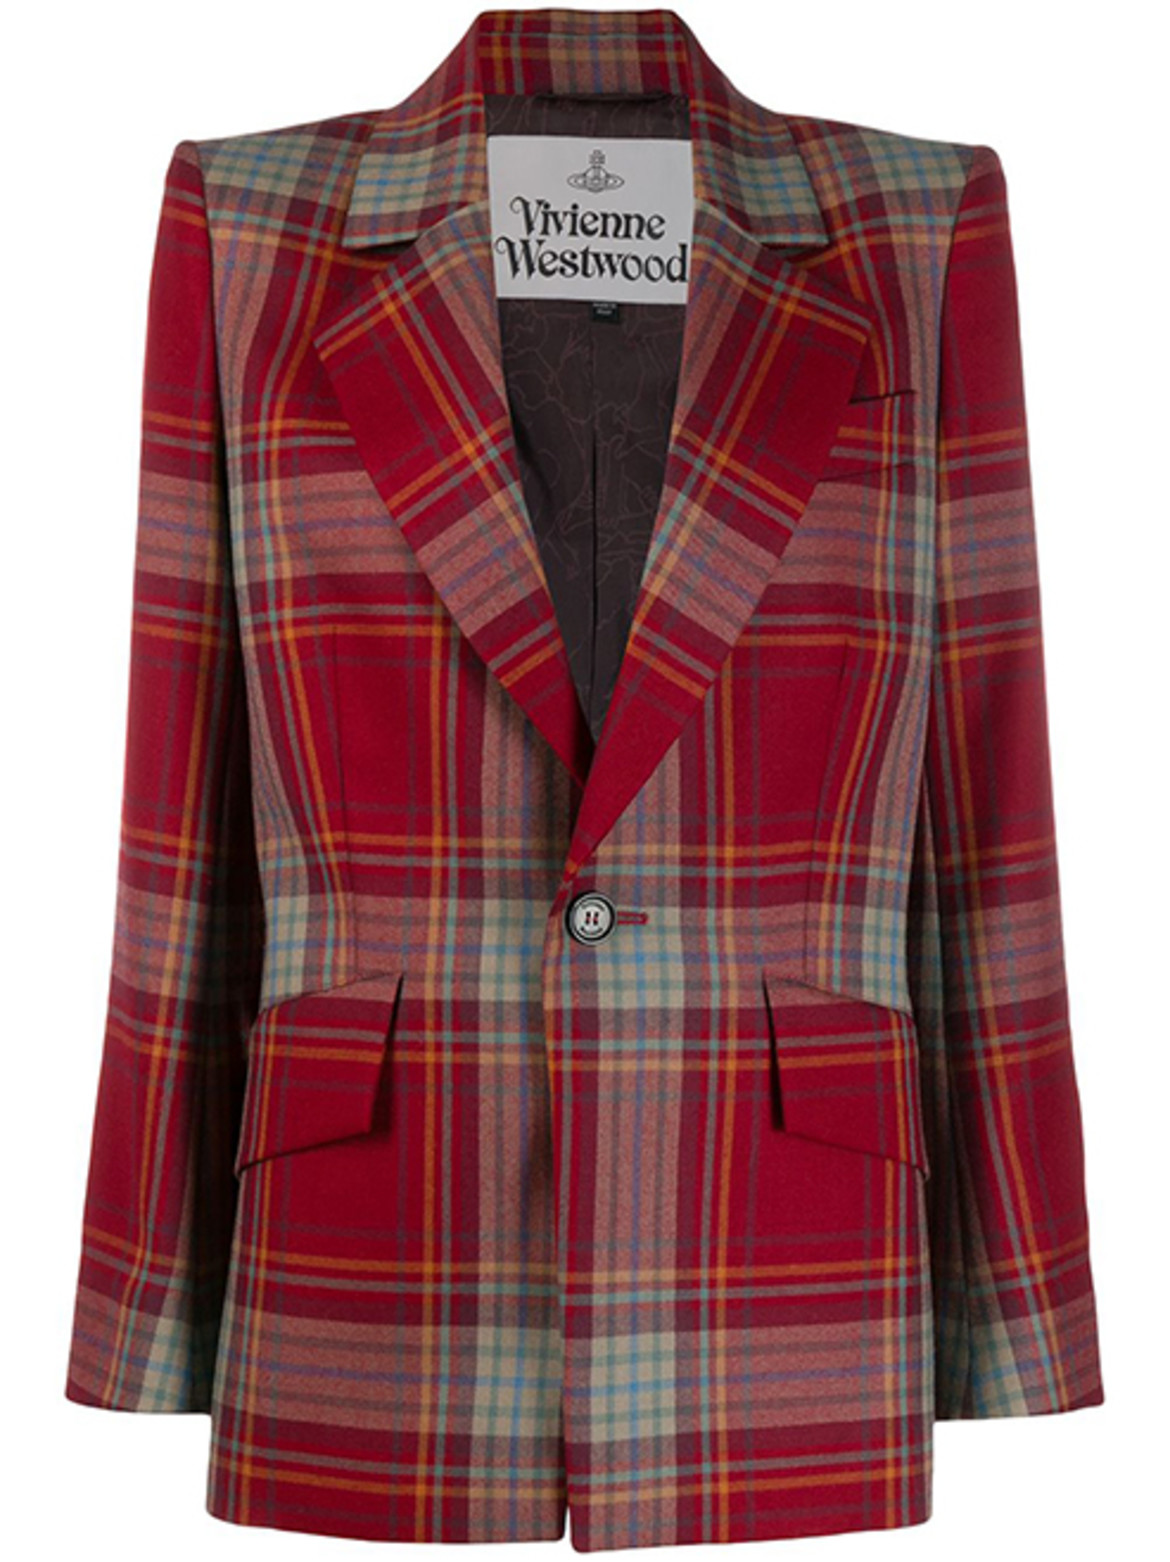 VIVIENNE WESTWOOD checked single breasted blazer HK$7,197 from Farfetch